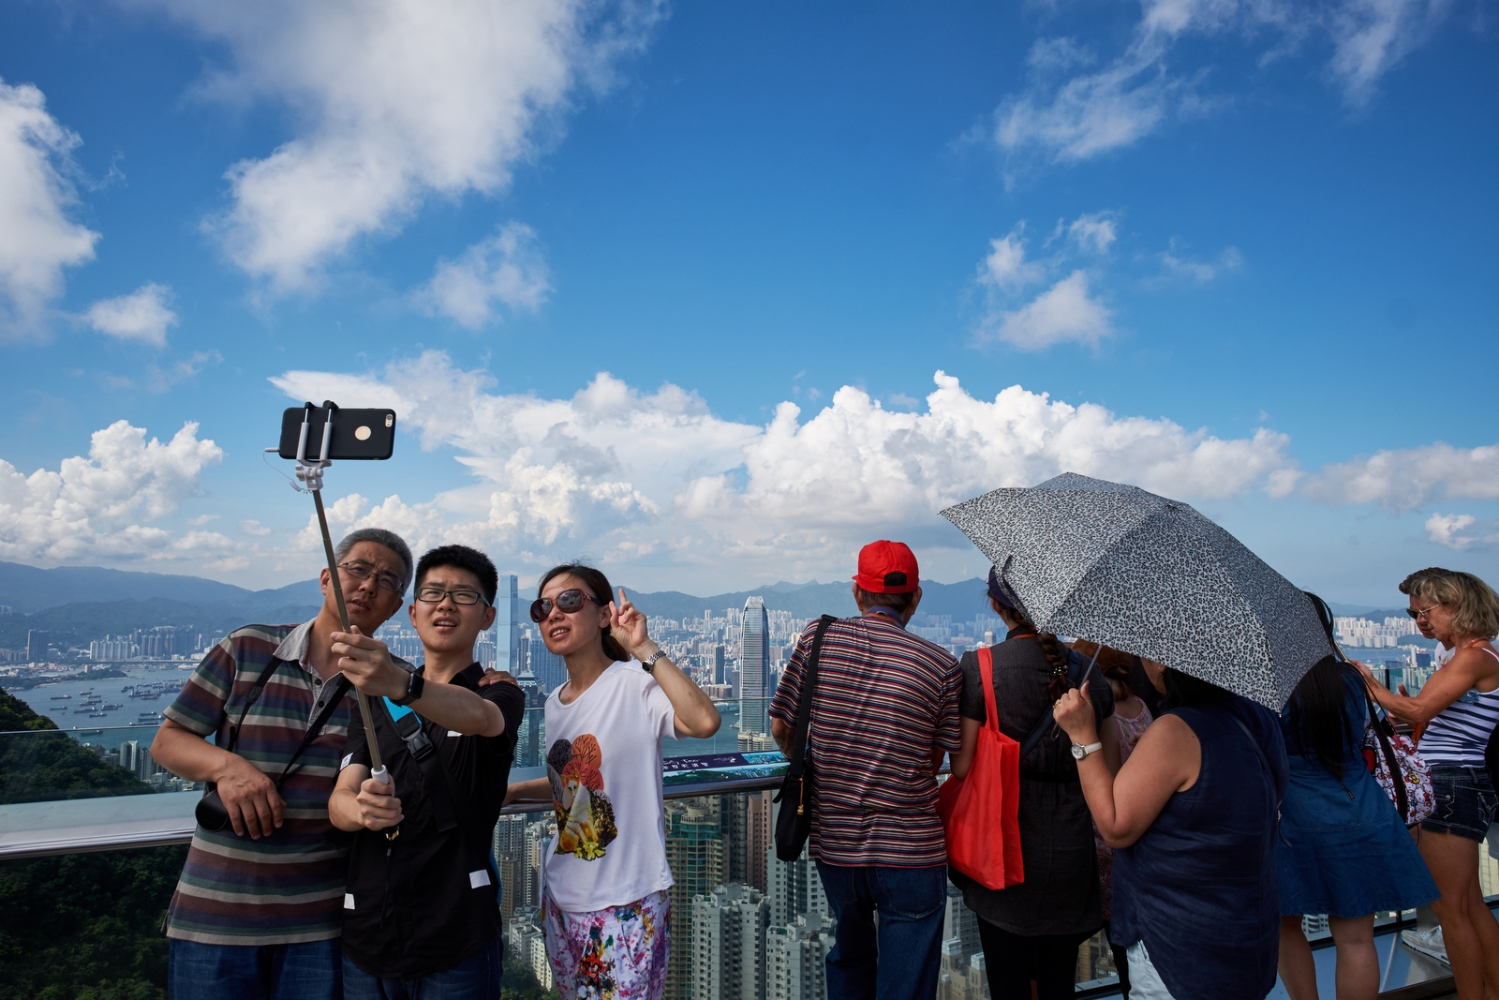 Tourists at Victoria Peak, Hong Kong.